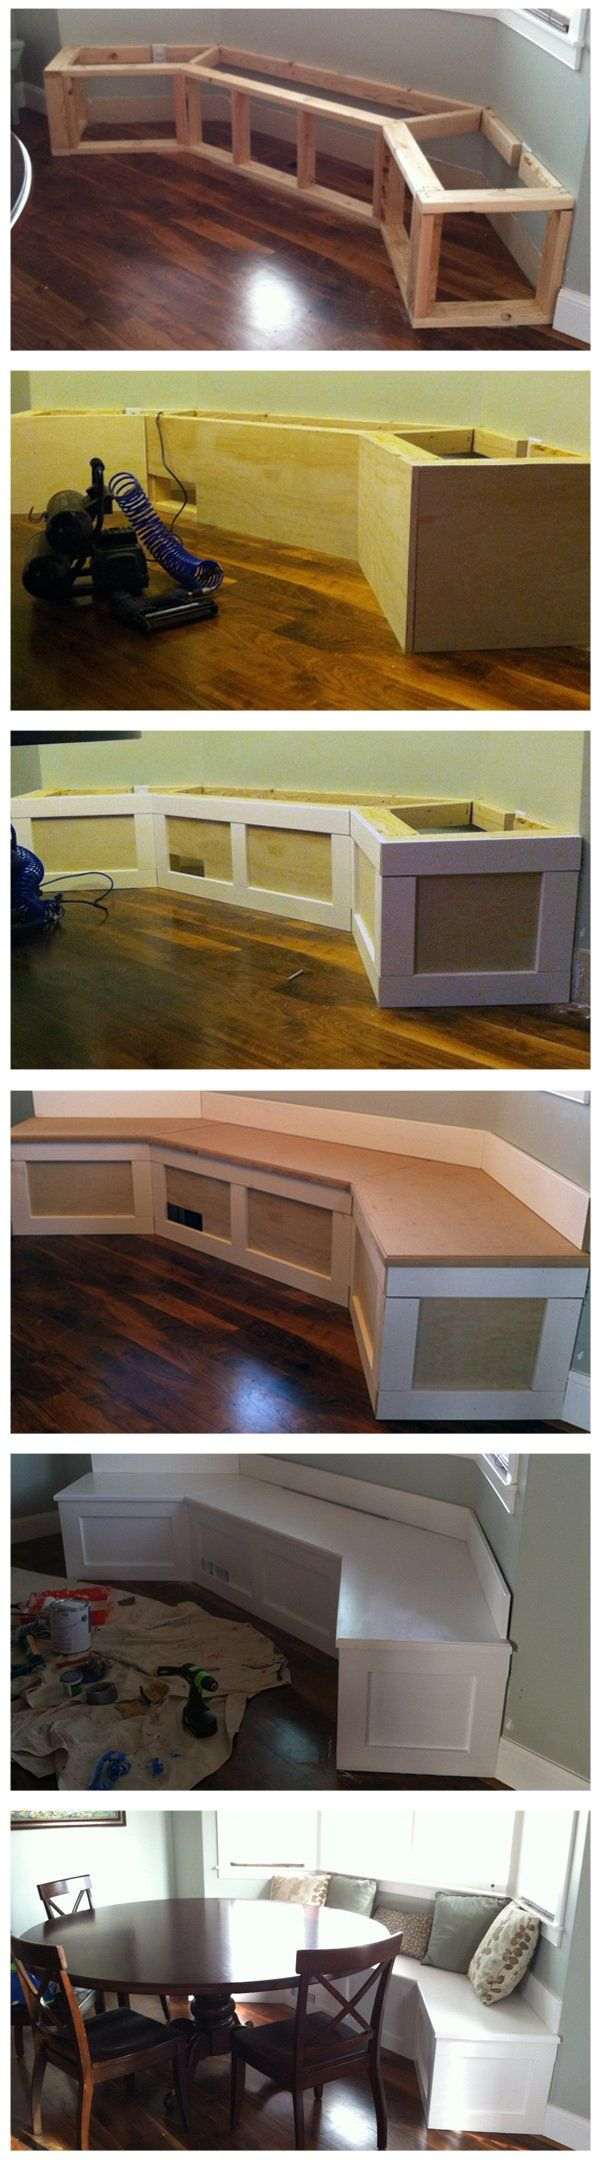 DIY - How to Build a Kitchen Bench. Maybe we'll try this...or maybe we'll just hire TJ again :)